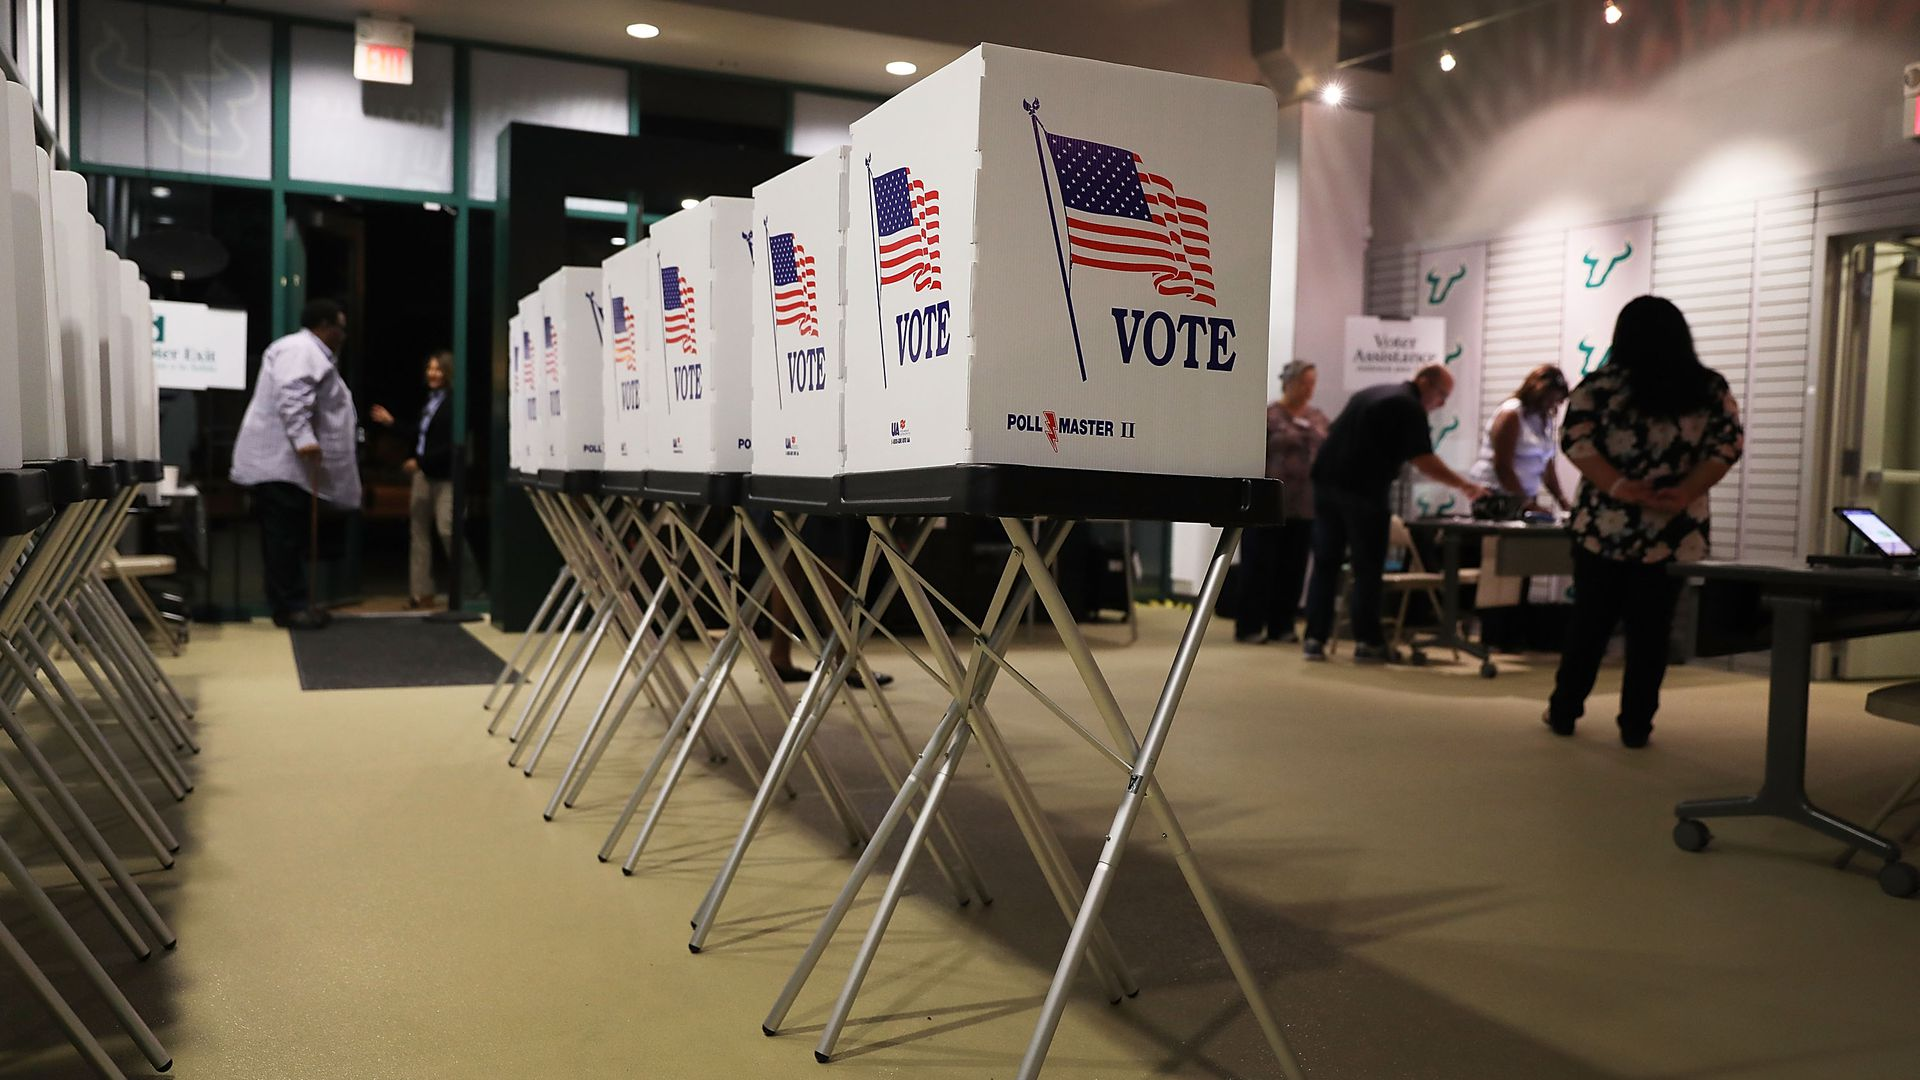 In this image, a row of voting booths are seen in a room with darkened windows.